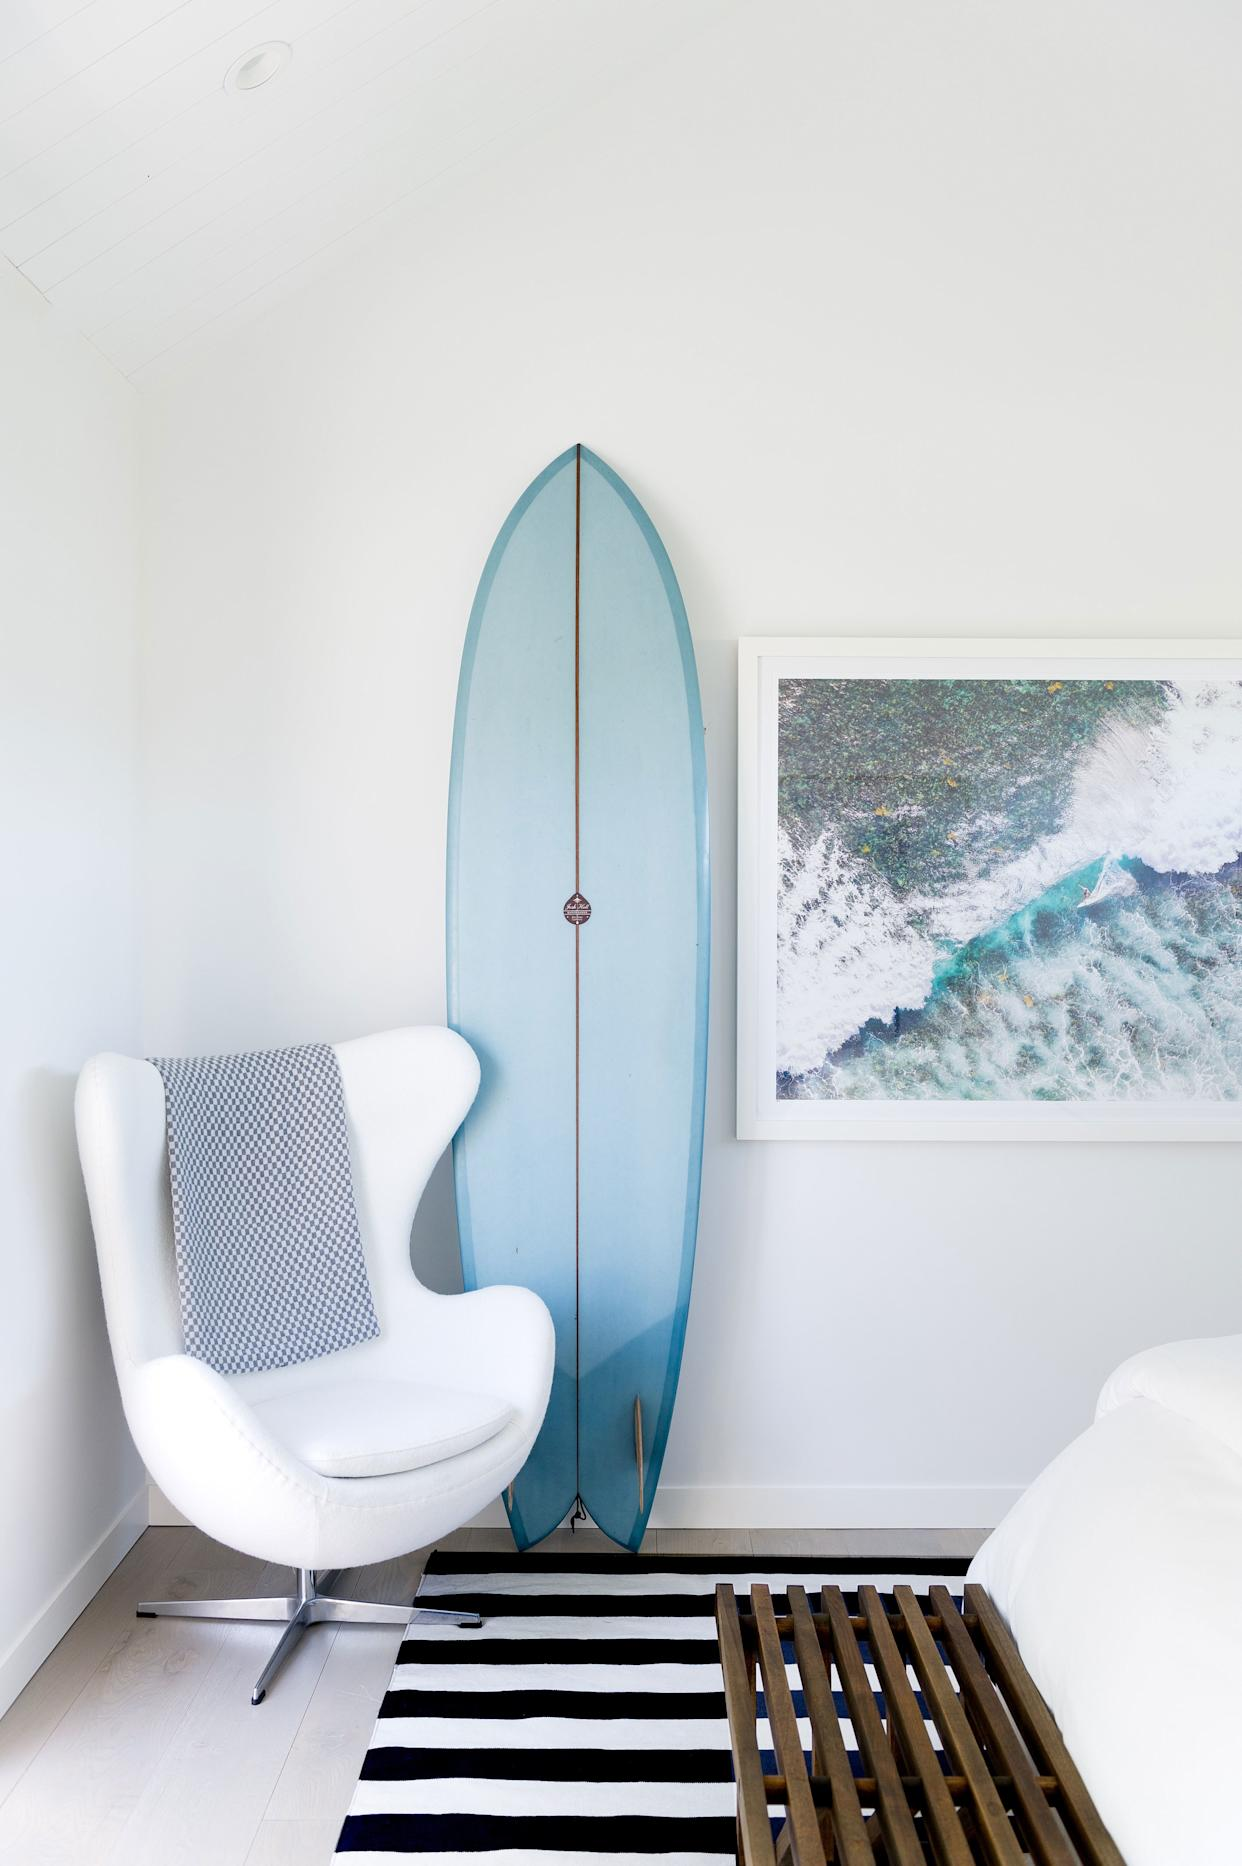 """<h1 class=""""title"""">NYC Interior Photography - Morgan Ione Photography</h1> <div class=""""caption""""> Designer Alicia Murphy placed an Arne Jacobsen Egg chair in the corner of her <a href=""""https://www.architecturaldigest.com/gallery/inside-a-montauk-beach-house-thats-actually-a-trailer-alicia-murphy?mbid=synd_yahoo_rss"""" rel=""""nofollow noopener"""" target=""""_blank"""" data-ylk=""""slk:Montauk bedroom"""" class=""""link rapid-noclick-resp"""">Montauk bedroom</a>. </div> <cite class=""""credit"""">Photo: <a href=""""https://www.morganionephotography.com/"""" rel=""""nofollow noopener"""" target=""""_blank"""" data-ylk=""""slk:Morgan Ione Yeager"""" class=""""link rapid-noclick-resp"""">Morgan Ione Yeager</a></cite>"""